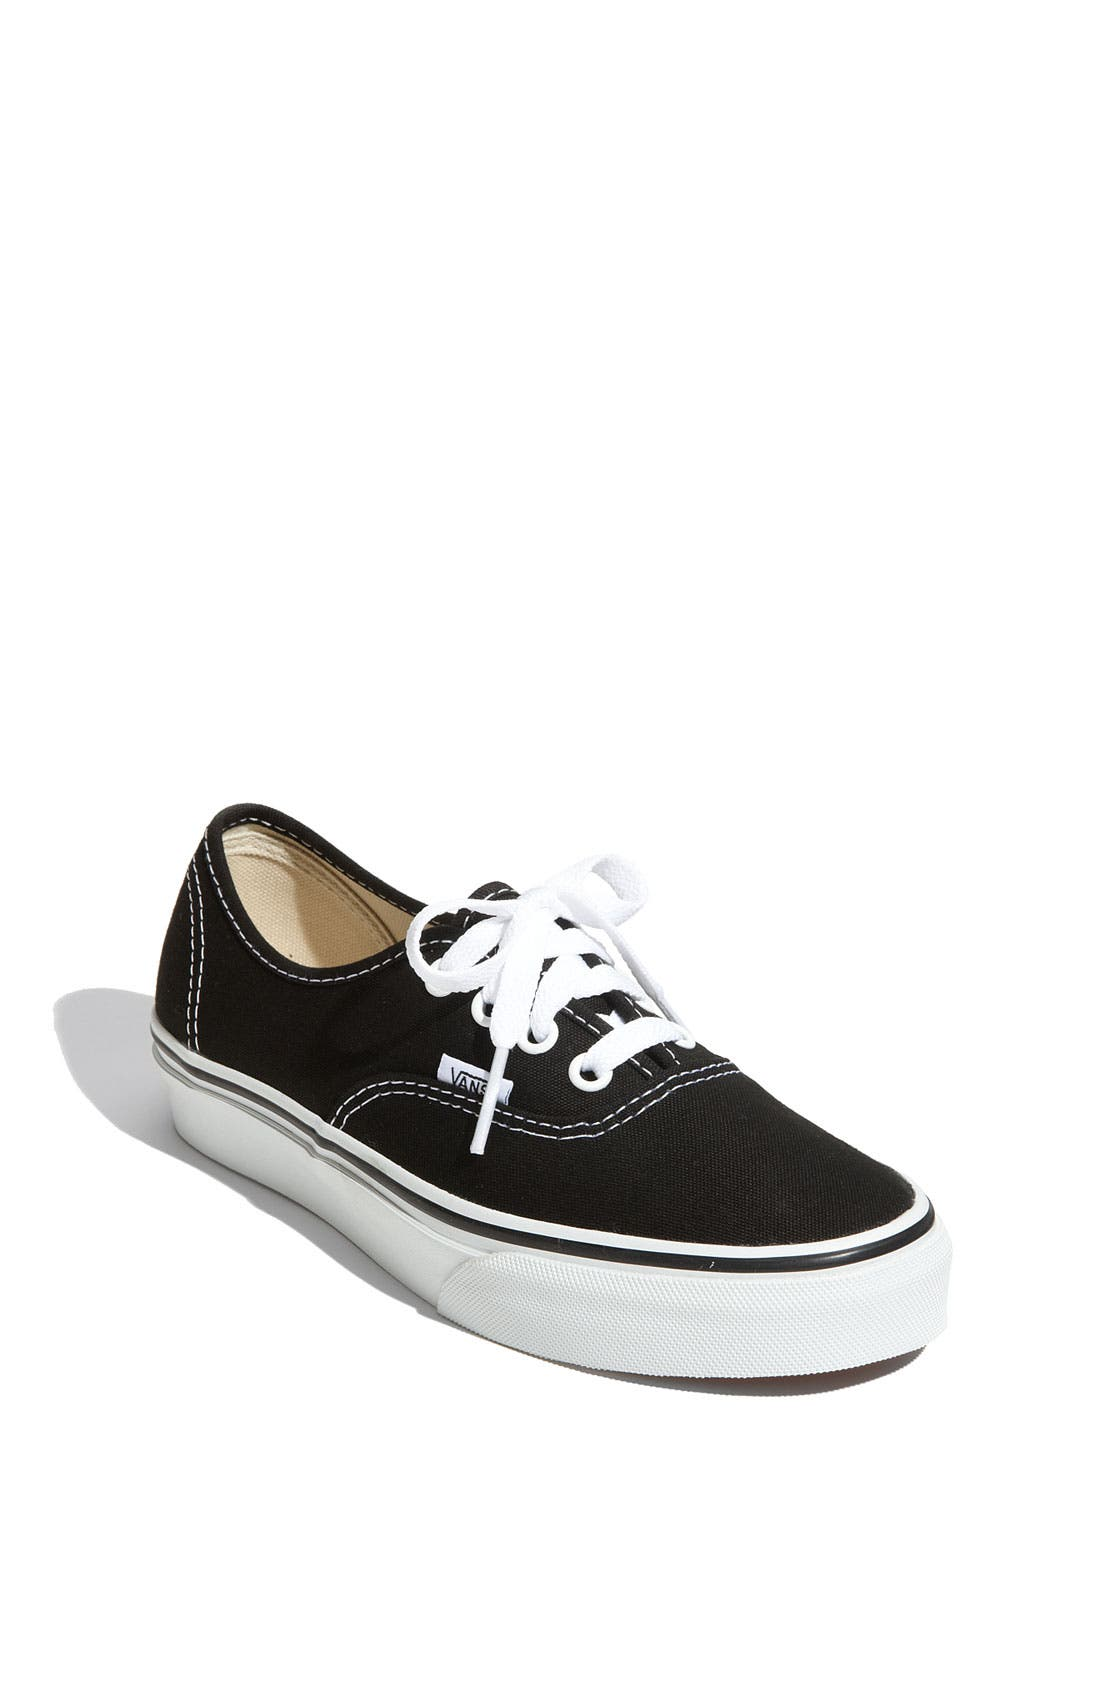 Alternate Image 1 Selected - Vans 'Authentic' Sneaker (Toddler, Little Kid & Big Kid)